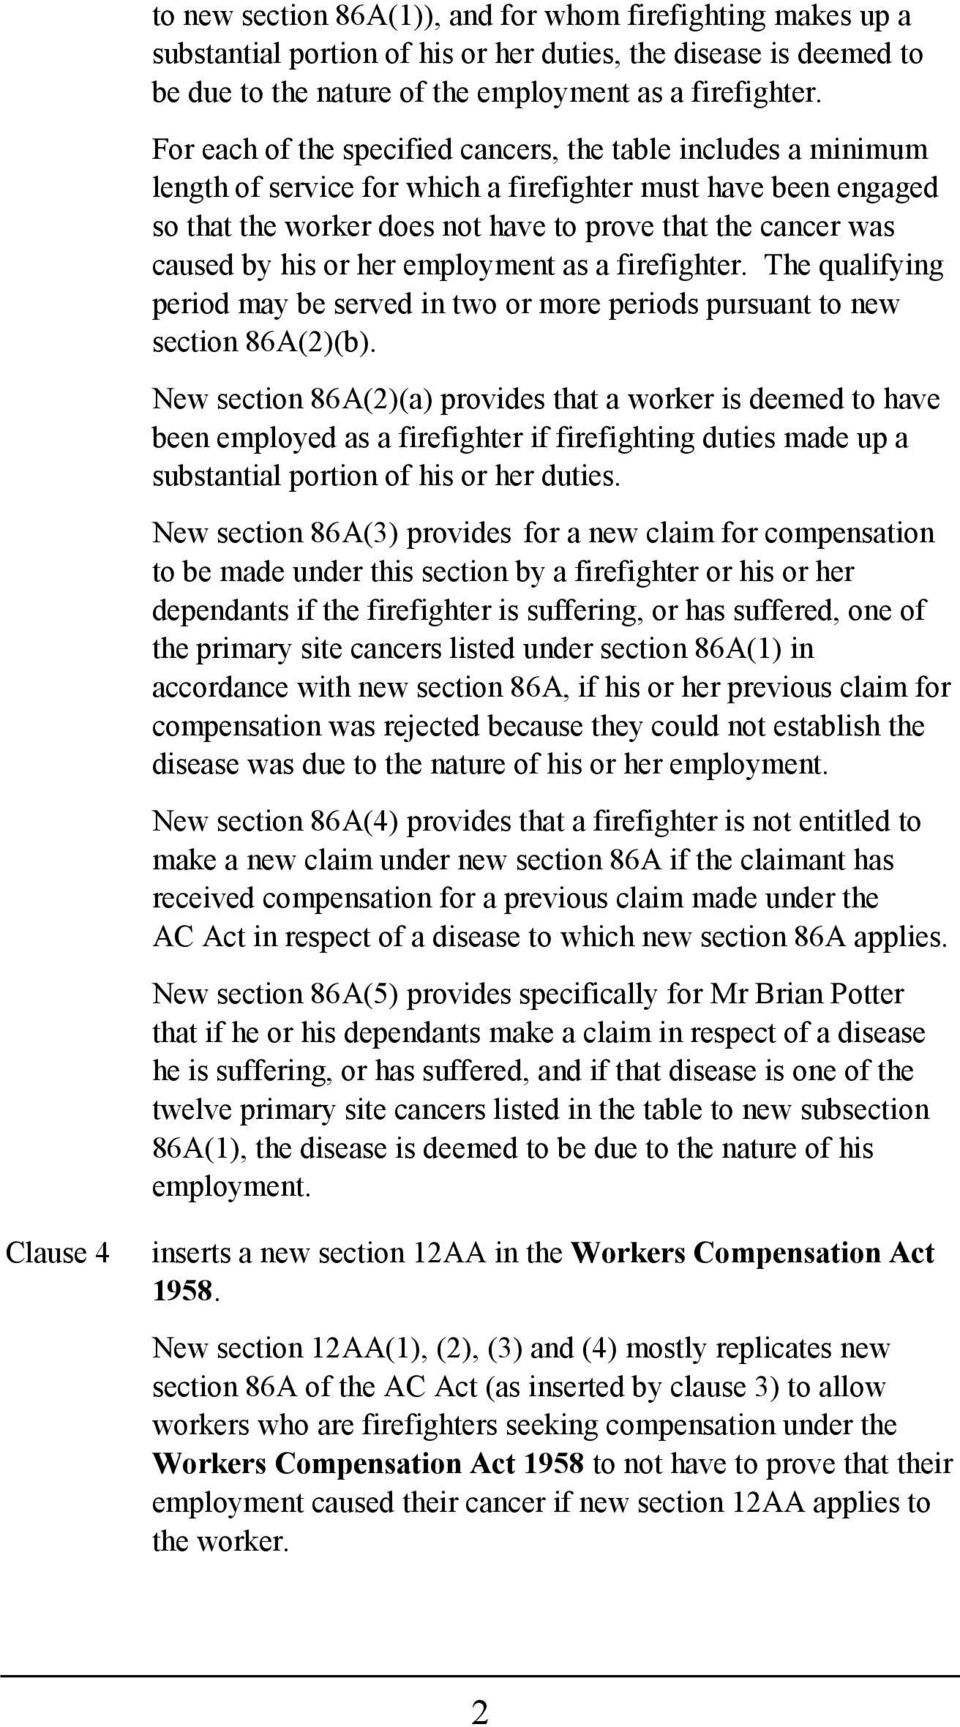 employment as a firefighter. The qualifying period may be served in two or more periods pursuant to new section 86A(2)(b).